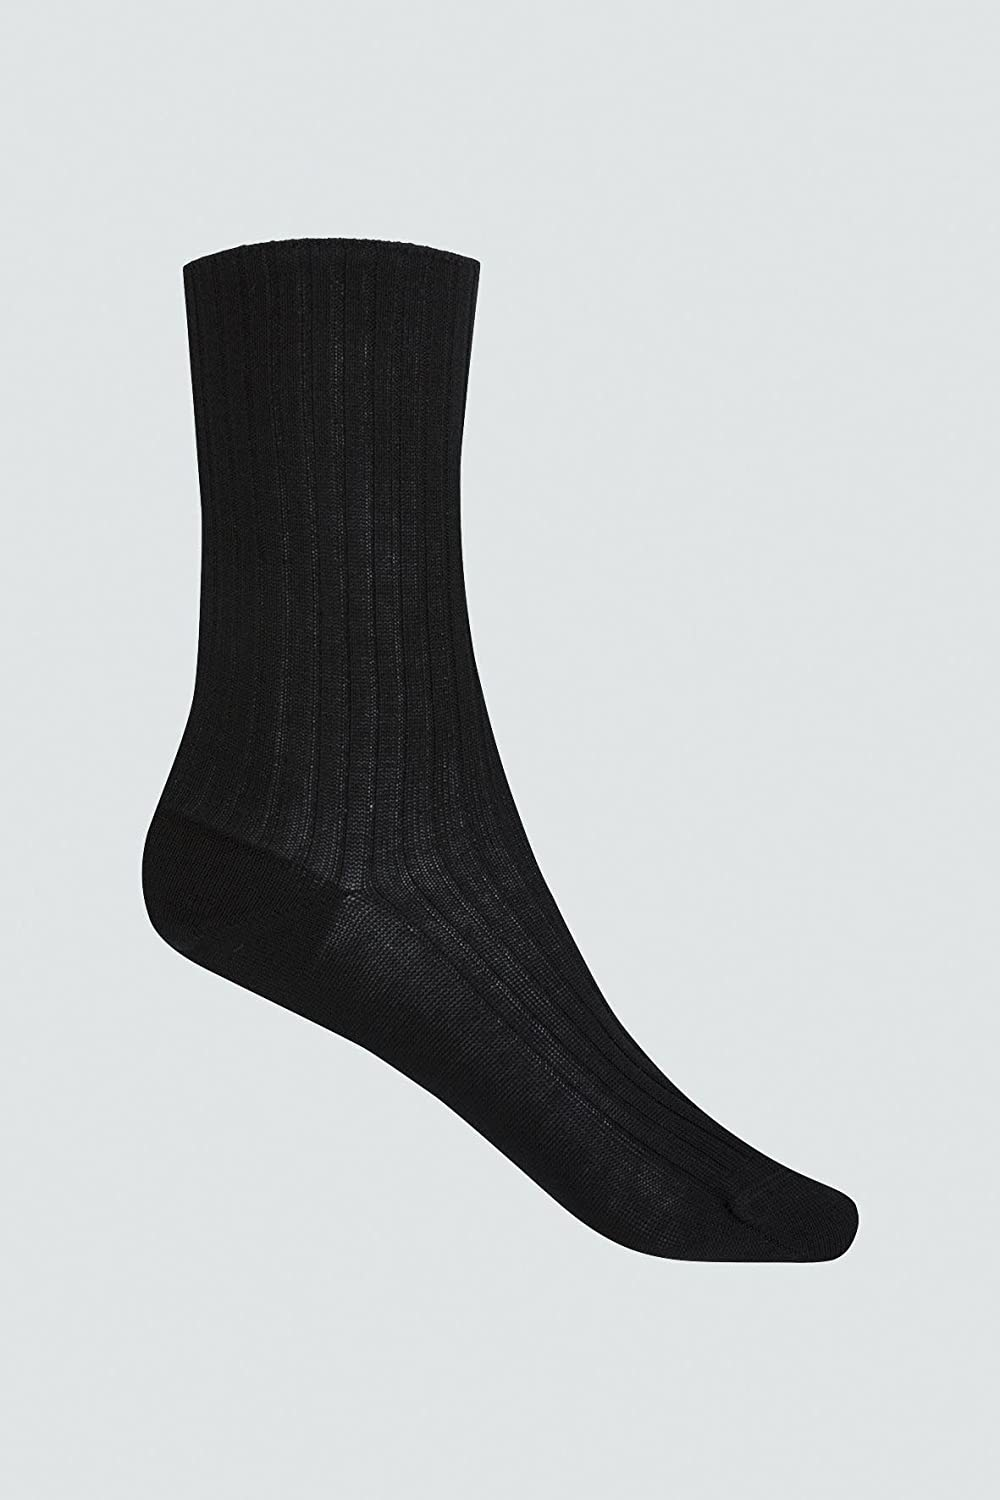 Punto Blanco 2 Pares de Calcetines Para Hombre Easy Socks By Hilo | Color Negro | Talla 41-42: Amazon.es: Deportes y aire libre